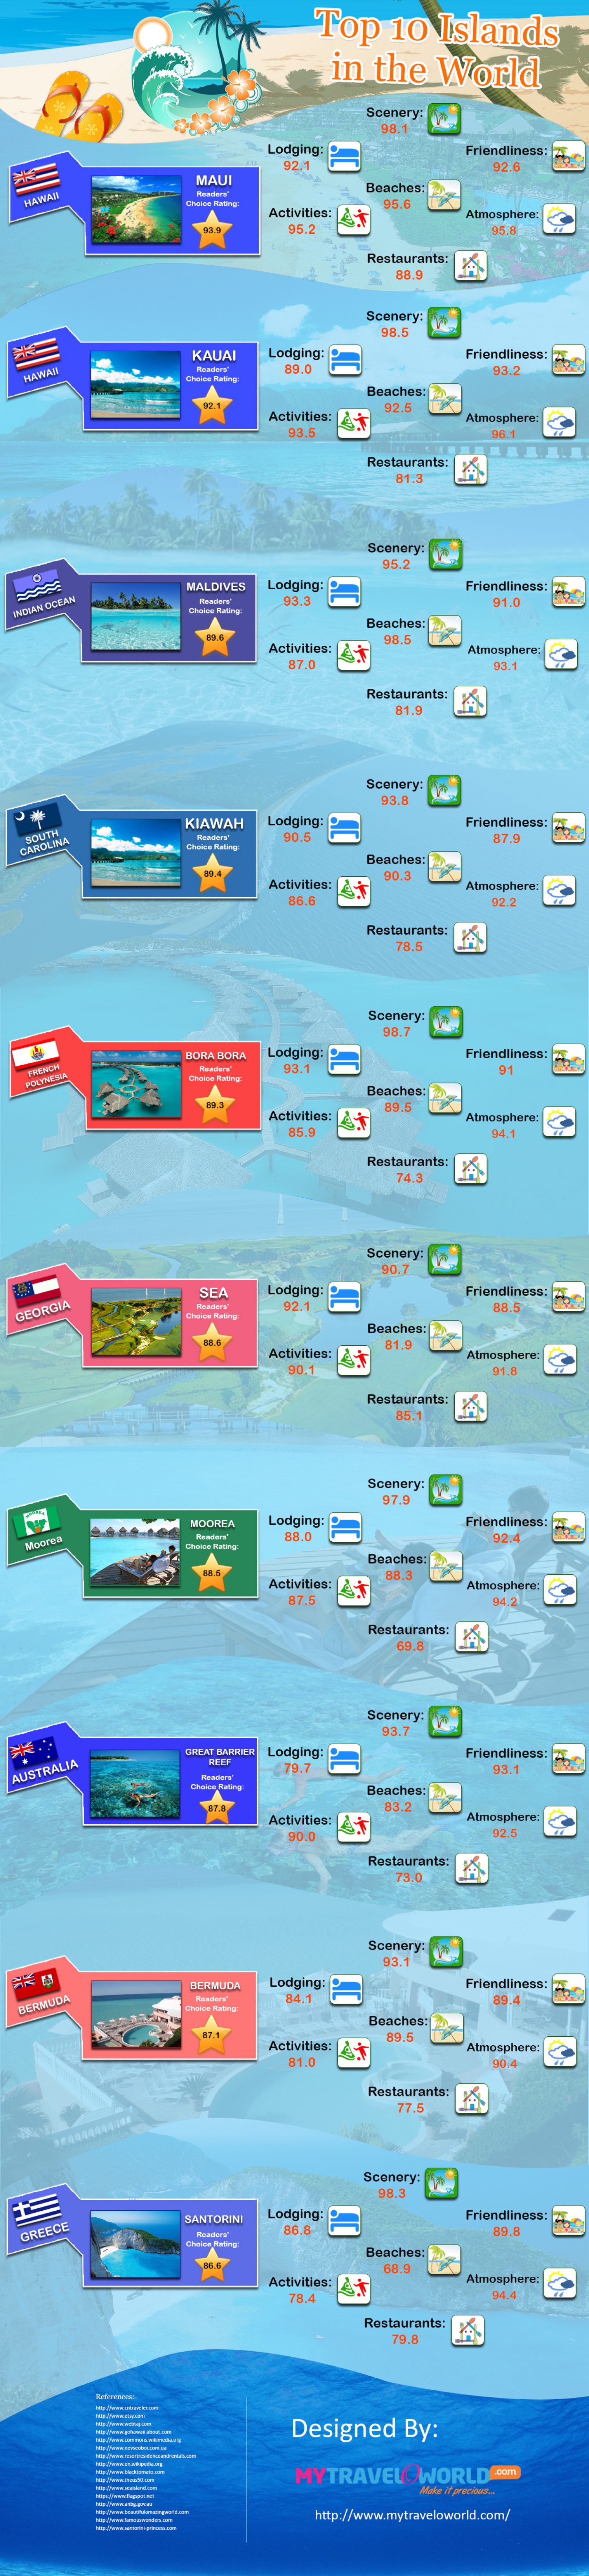 Top 10 Island in the World Infographic